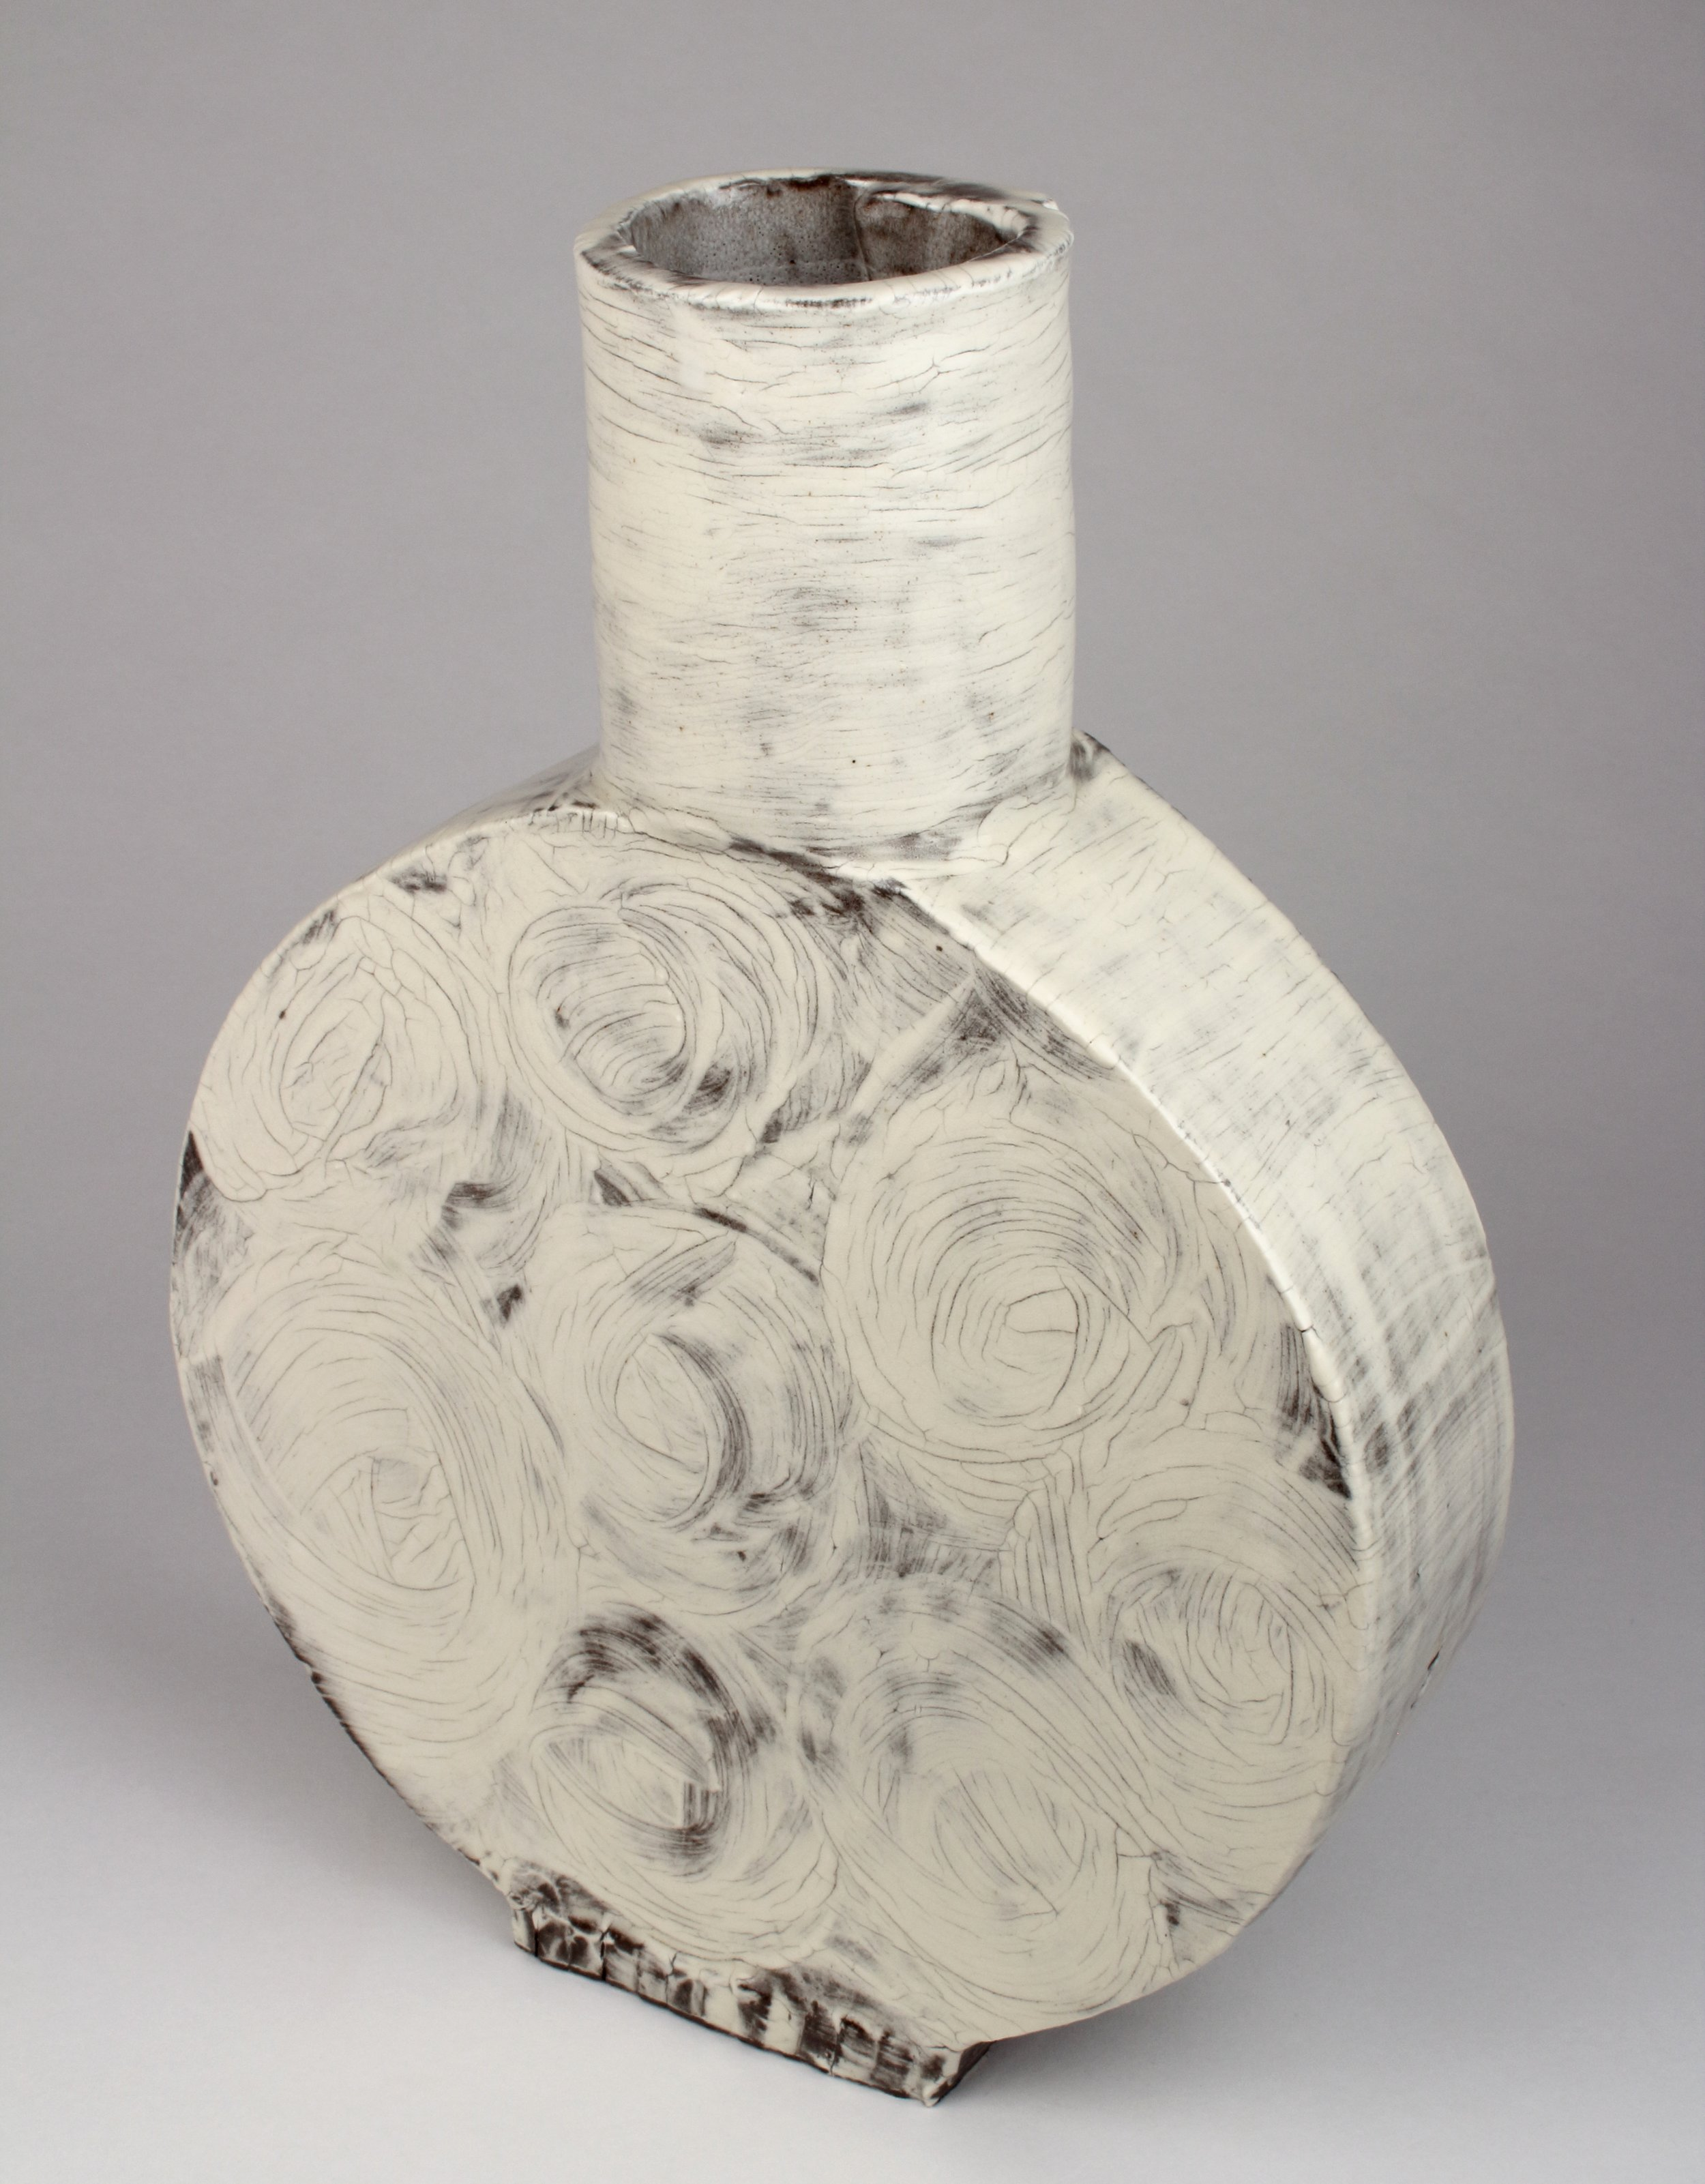 "White Floral Vase   Stoneware, slip and glaze  12 1/2"" x 9 1/4"" x 2 3/4""  $400  Click image to enlarge   Inquire."